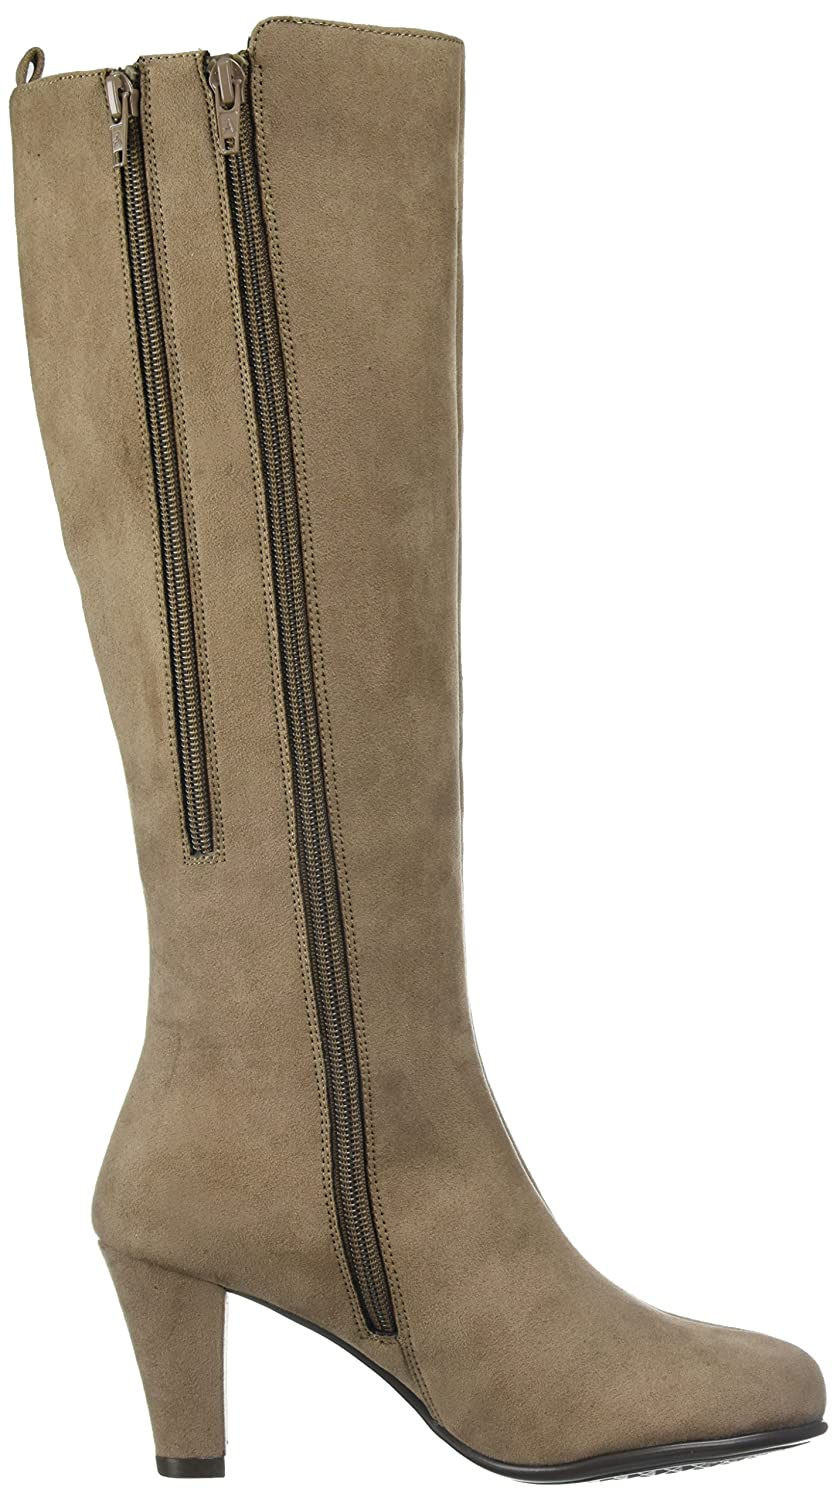 Aerosoles Women's Quick B074GGR2BW Role Knee High Boot B074GGR2BW Quick 5 M US|Taupe Fabric 952ea8